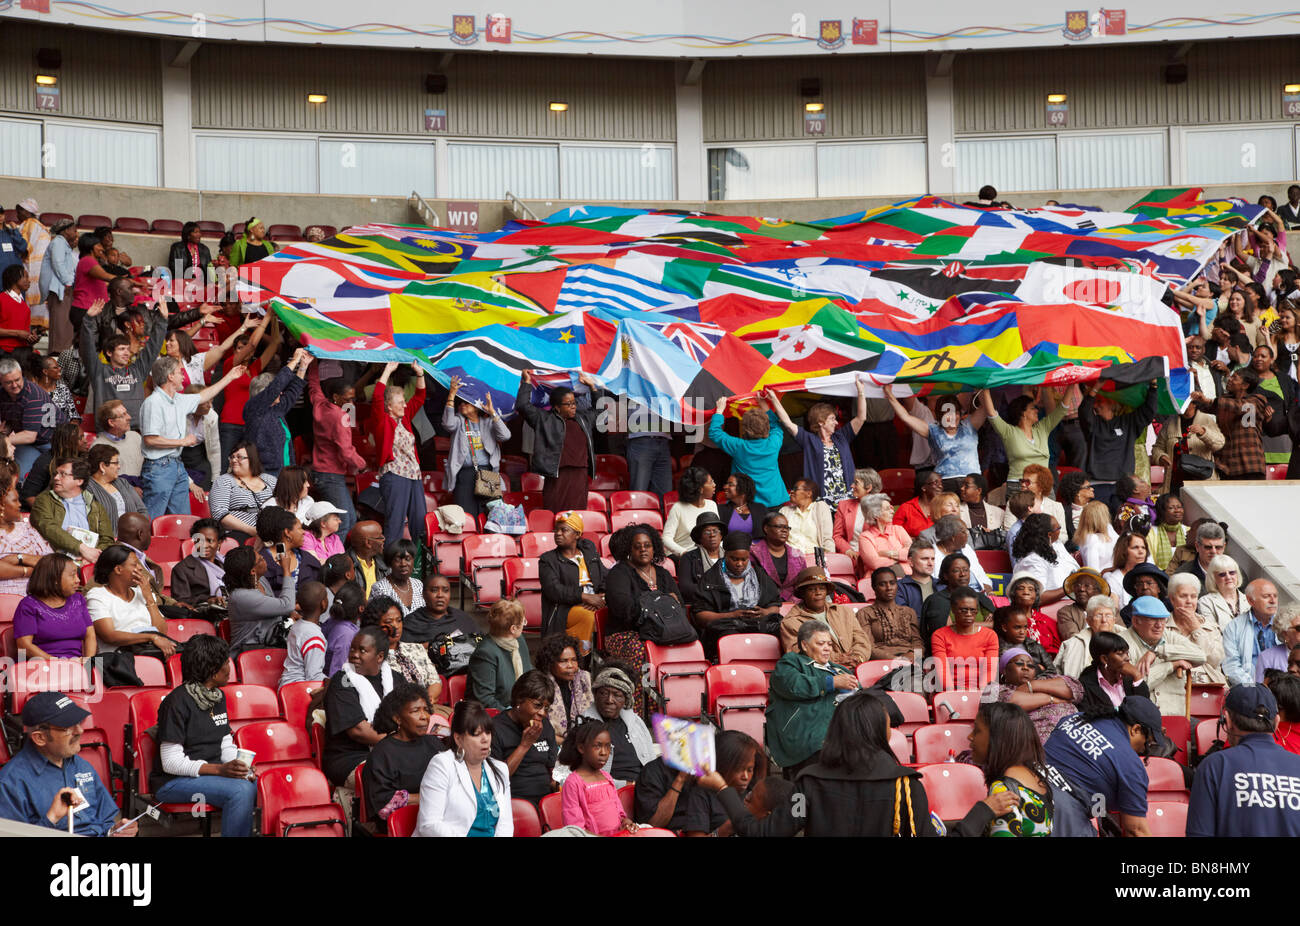 Section of the crowd at the 2010 London Global Day of Prayer. West Ham United Football Club, Upton Park, London, - Stock Image